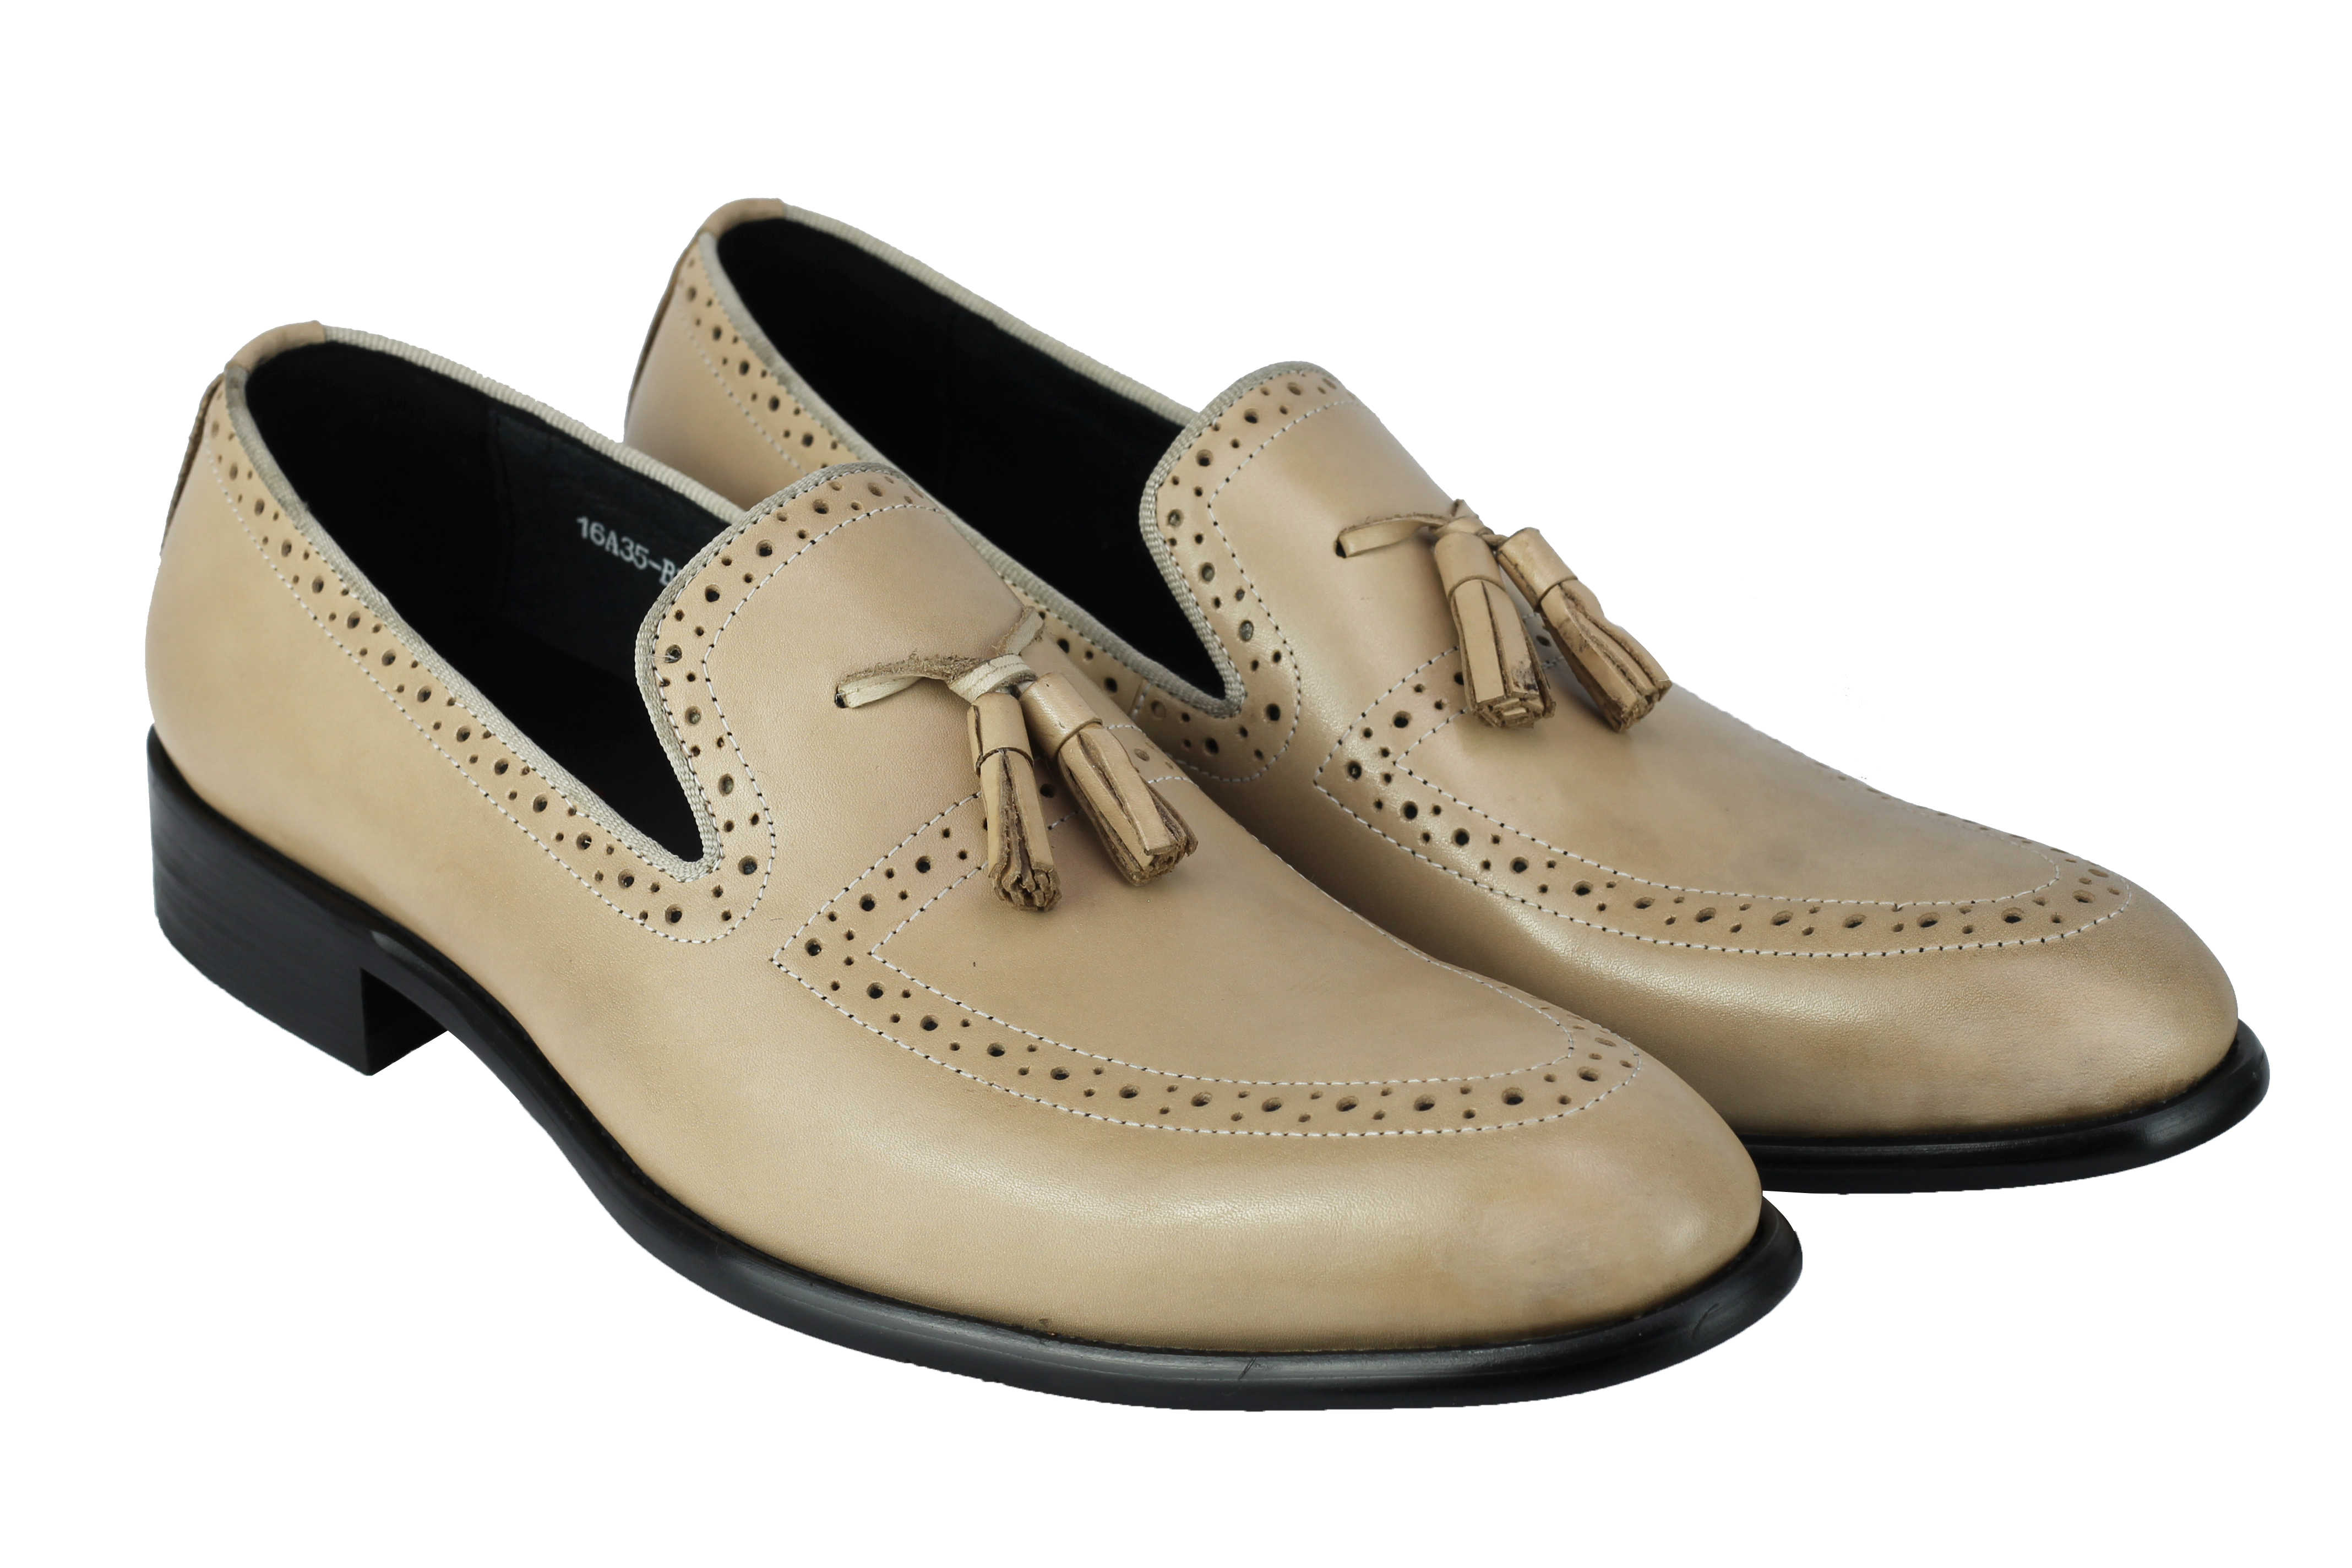 Mens-Real-Leather-Tassel-Loafers-Retro-Hand-Made-Brogue-Slip-on-Dress-Shoes thumbnail 3